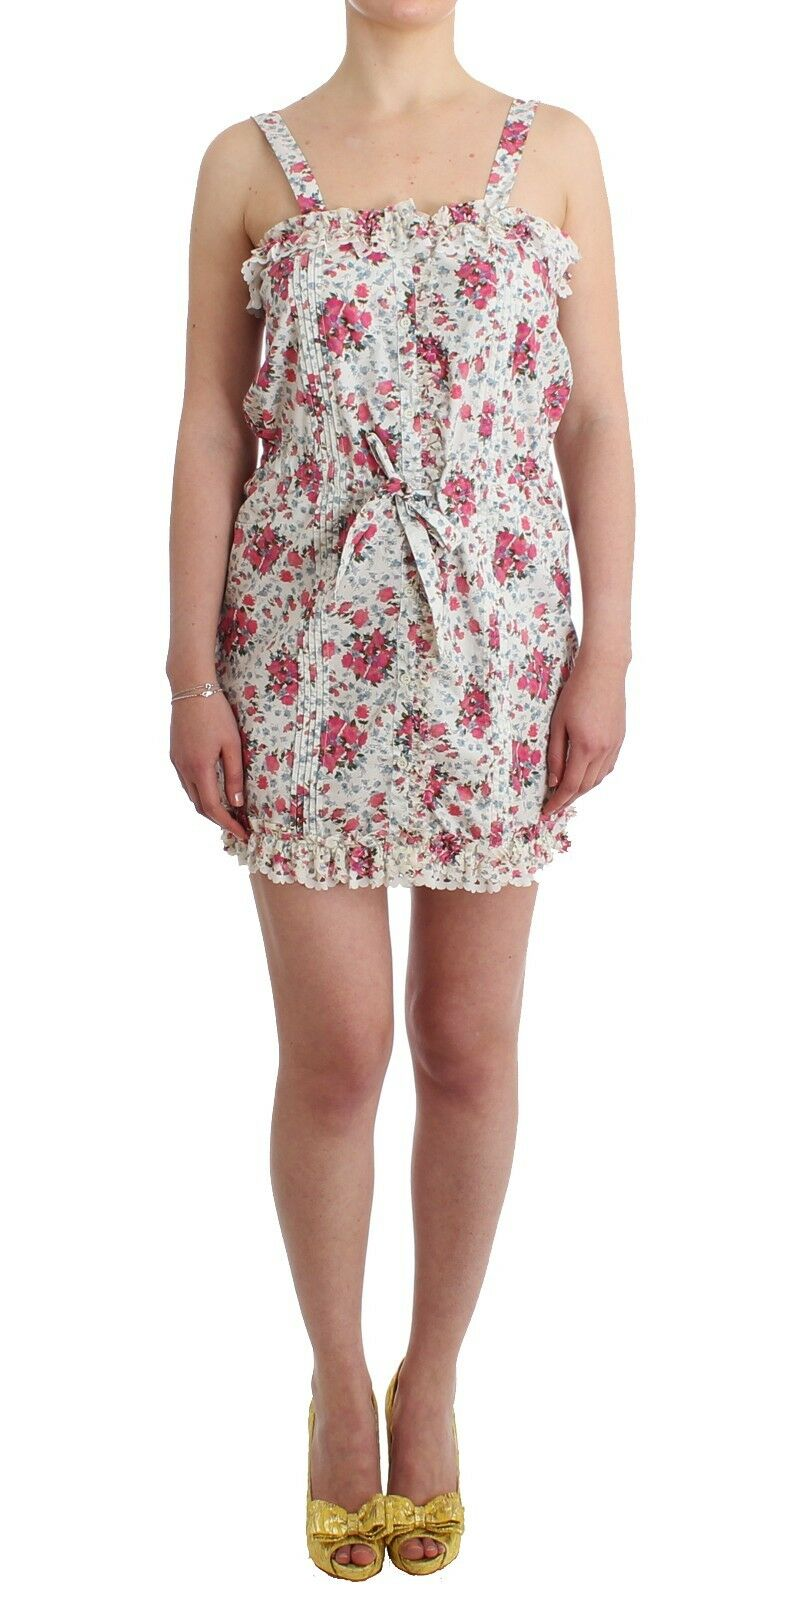 NEW  Ermanno Scervino Dress Mini Beachwear Rosa Floral Beach Short IT46 US12